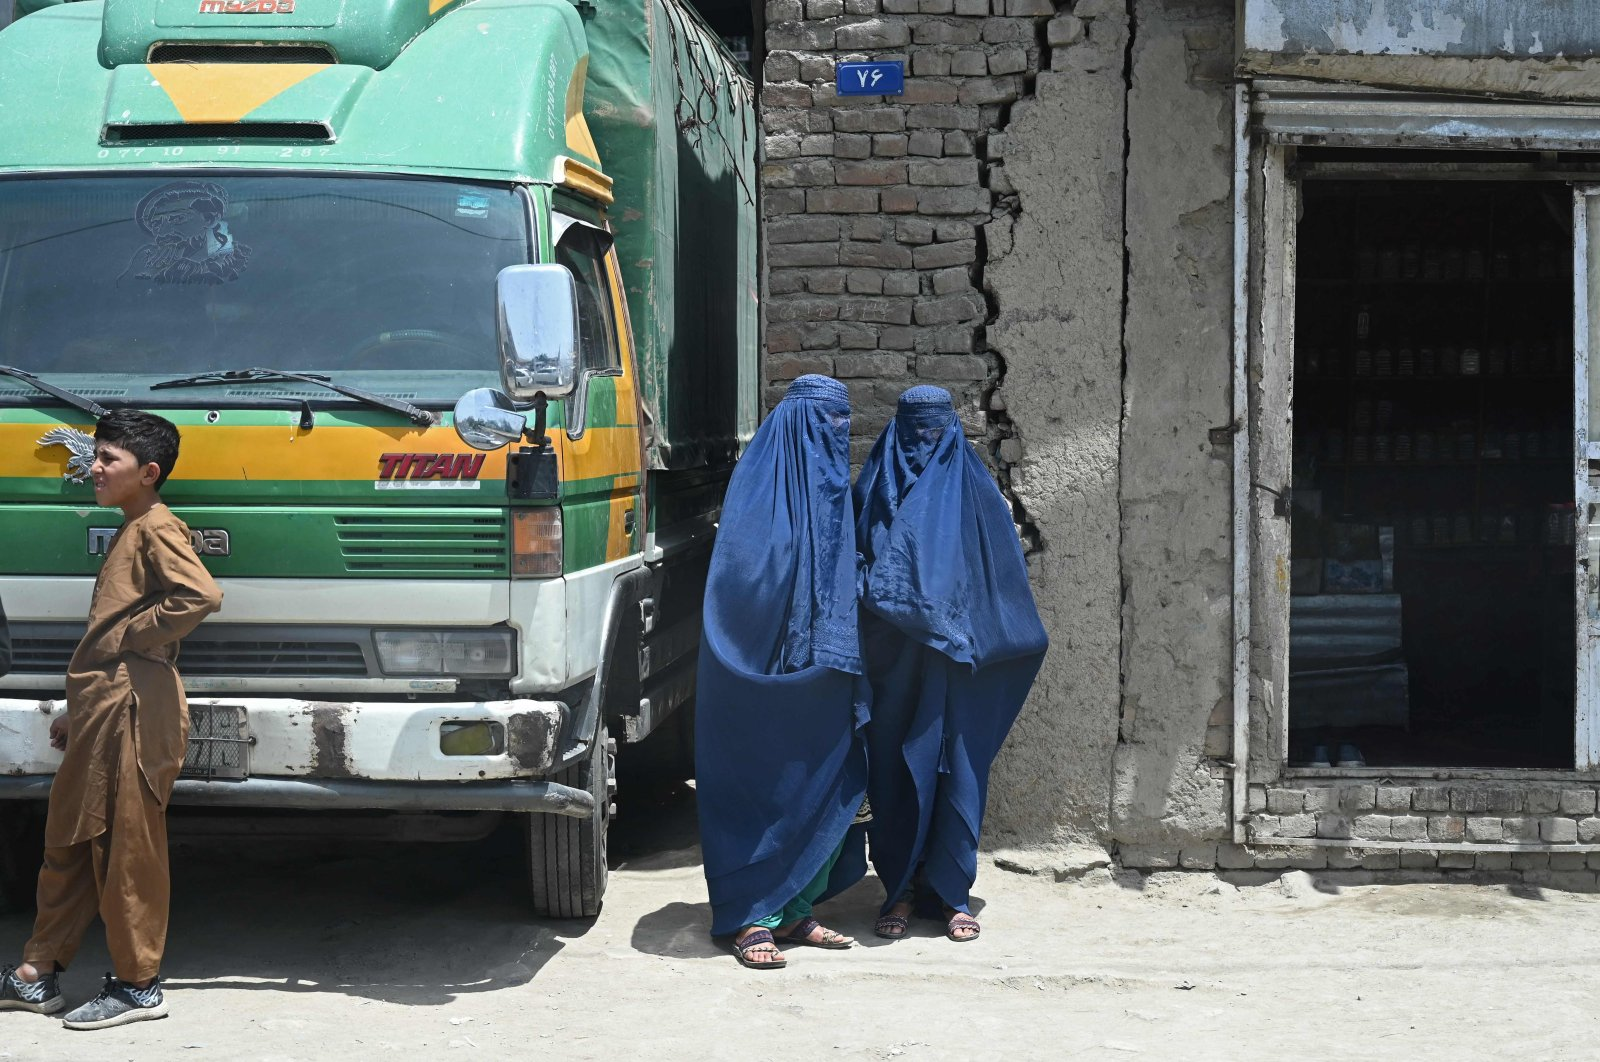 Afghan women and a boy stand outside a shop in the old quarters of Kabul, Afghanistan, July 12, 2021. (AFP Photo)